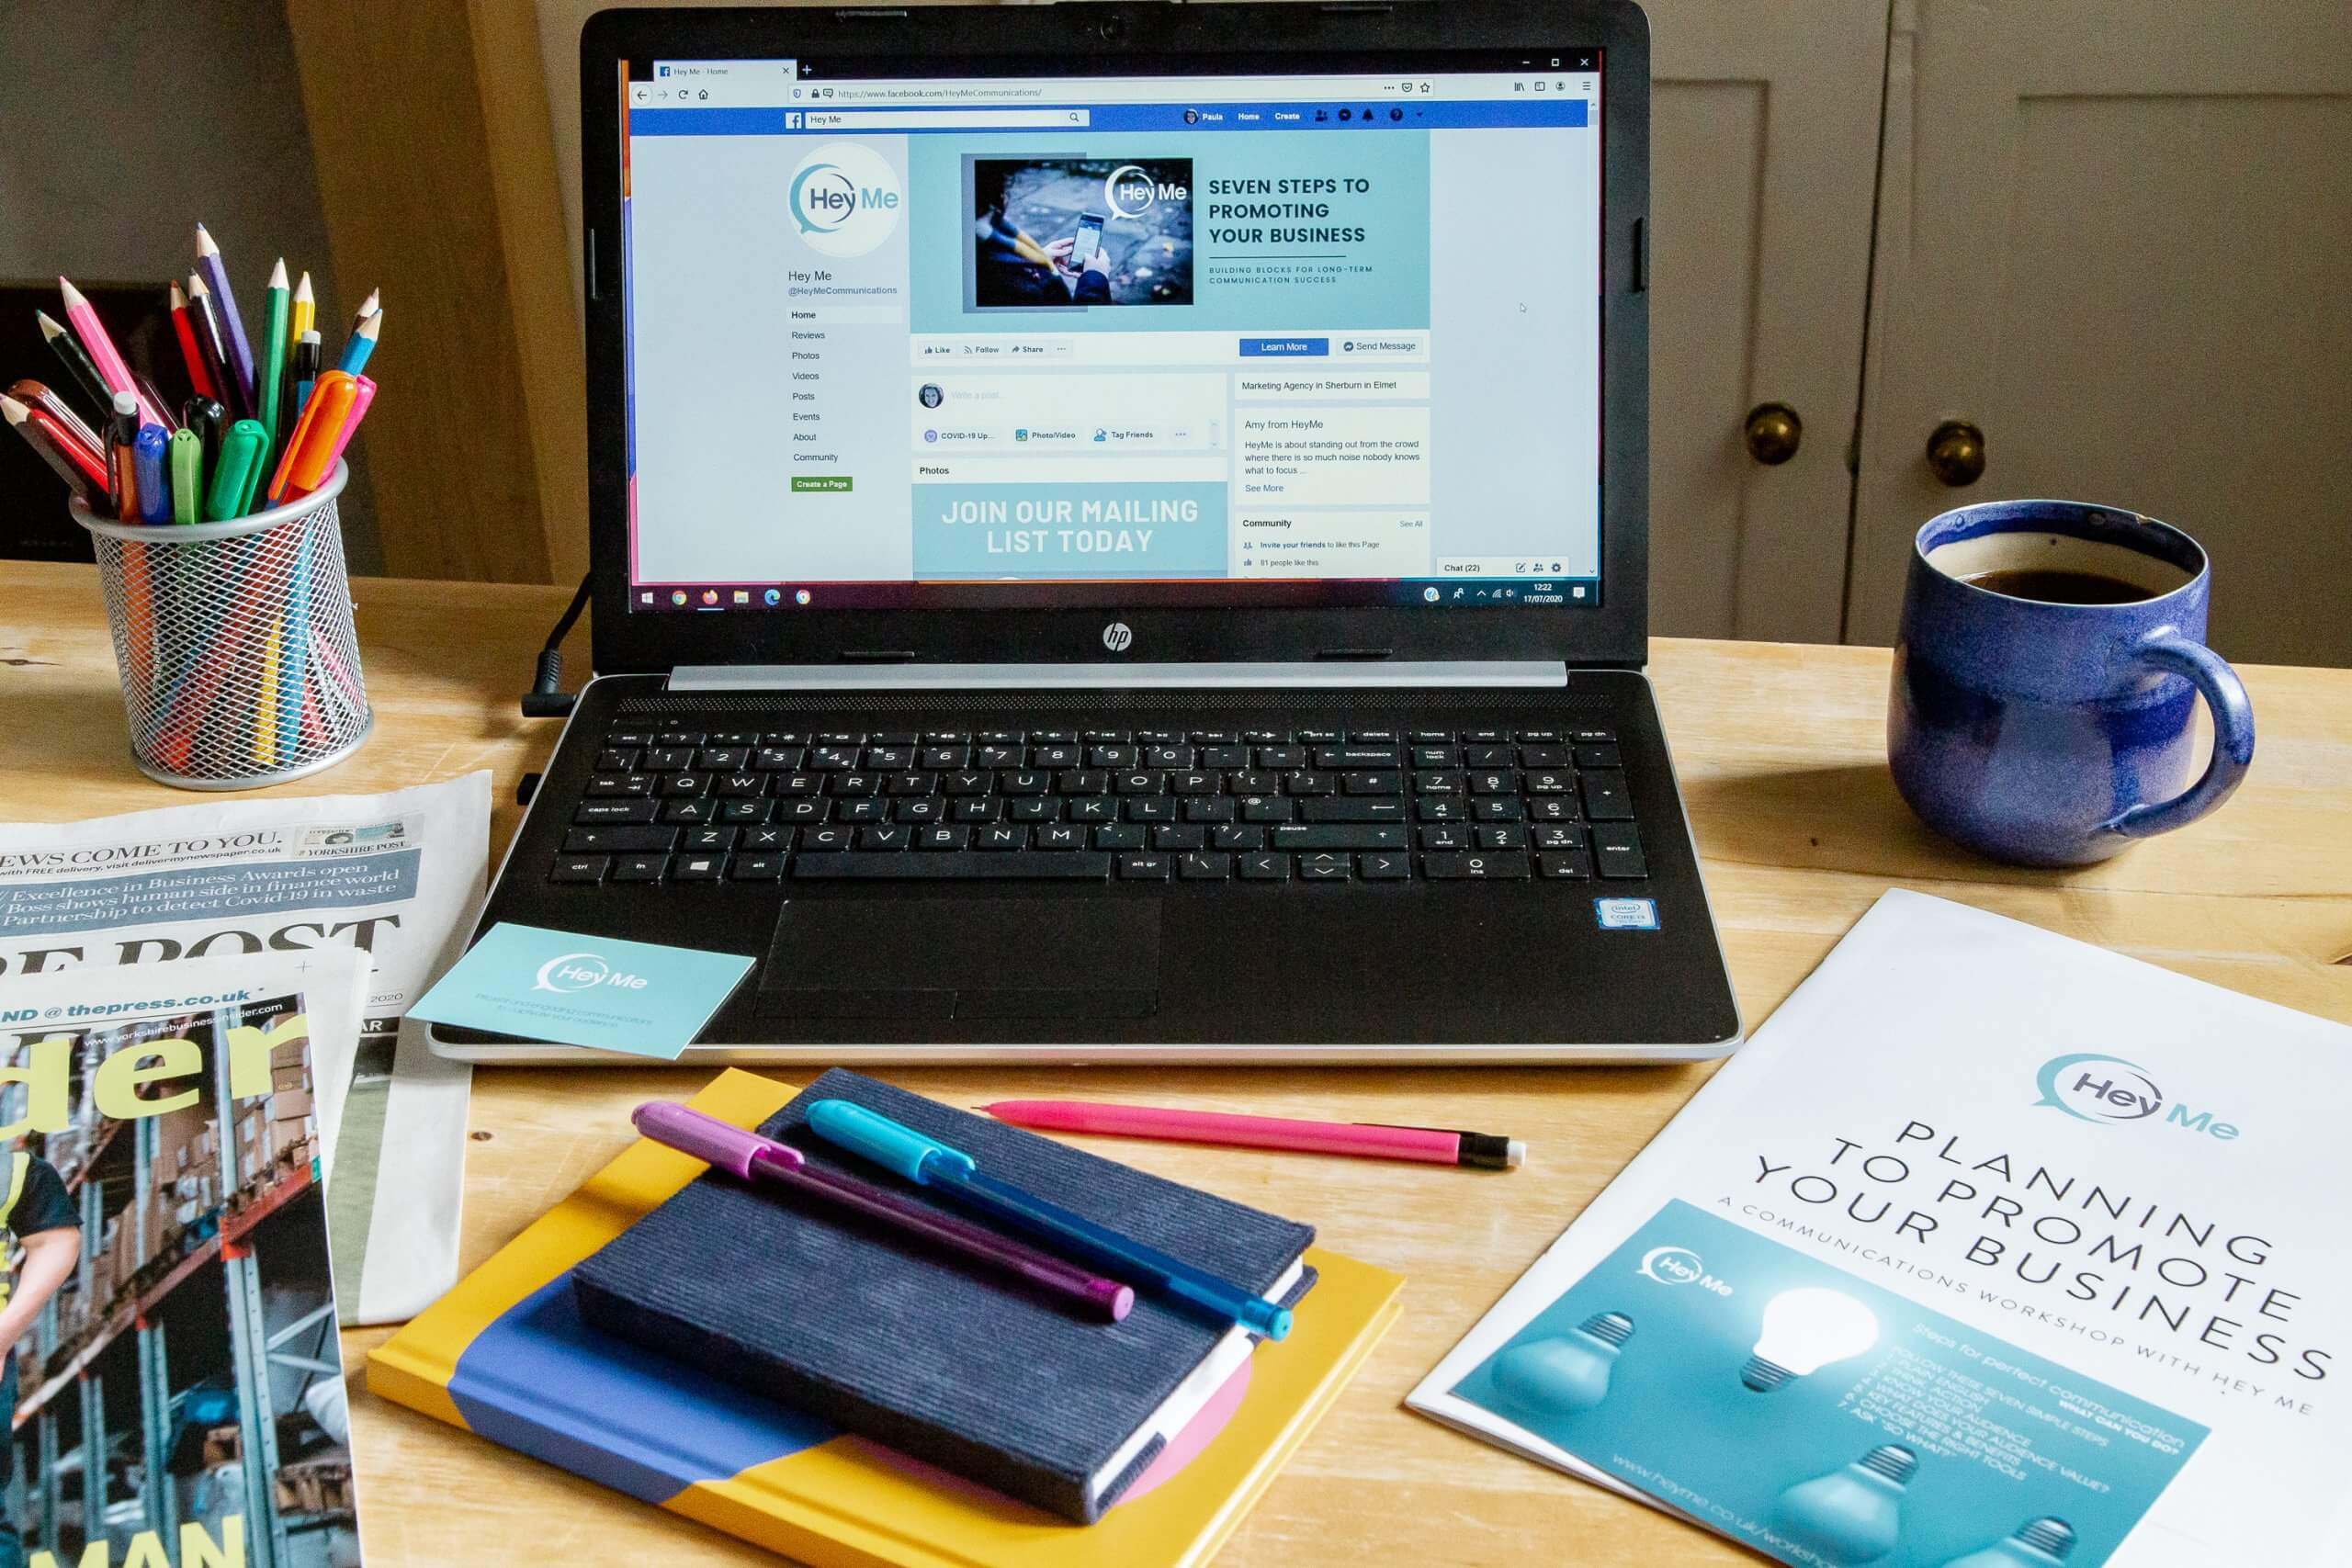 Laptop and Hey Me promotional items on a desk